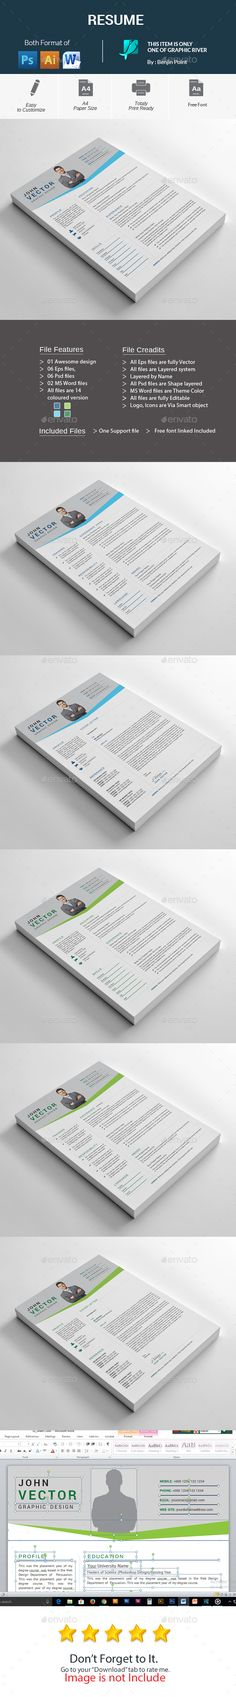 Resume Cv template, Resume cv and Font logo - not to include in resume